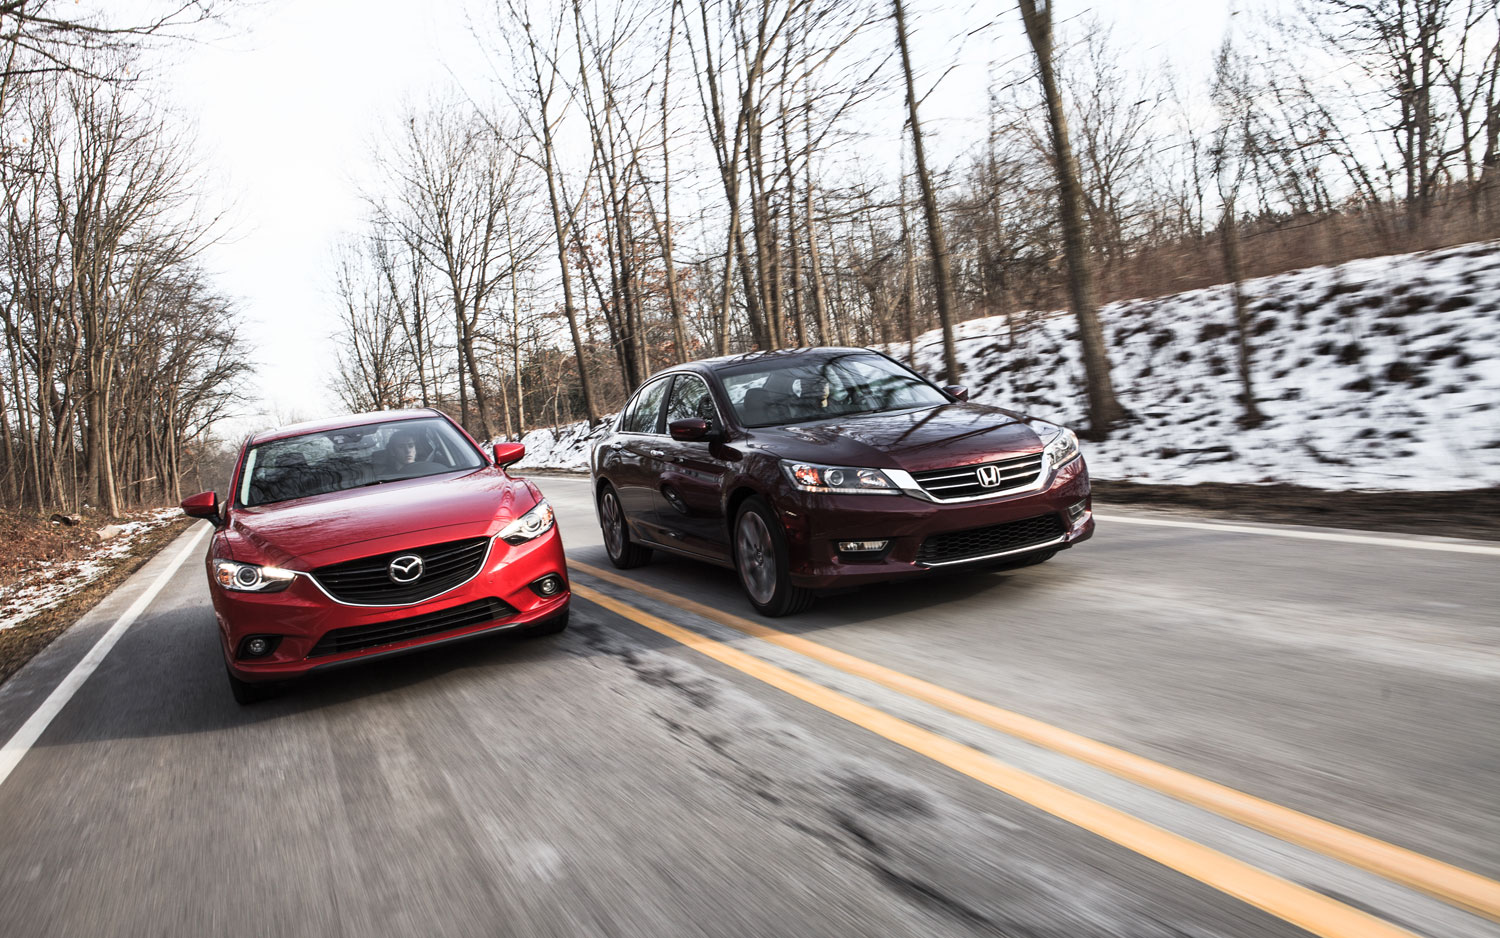 Family Sedan Comparo Honda Accord Vs Mazda 6 Side By Side1